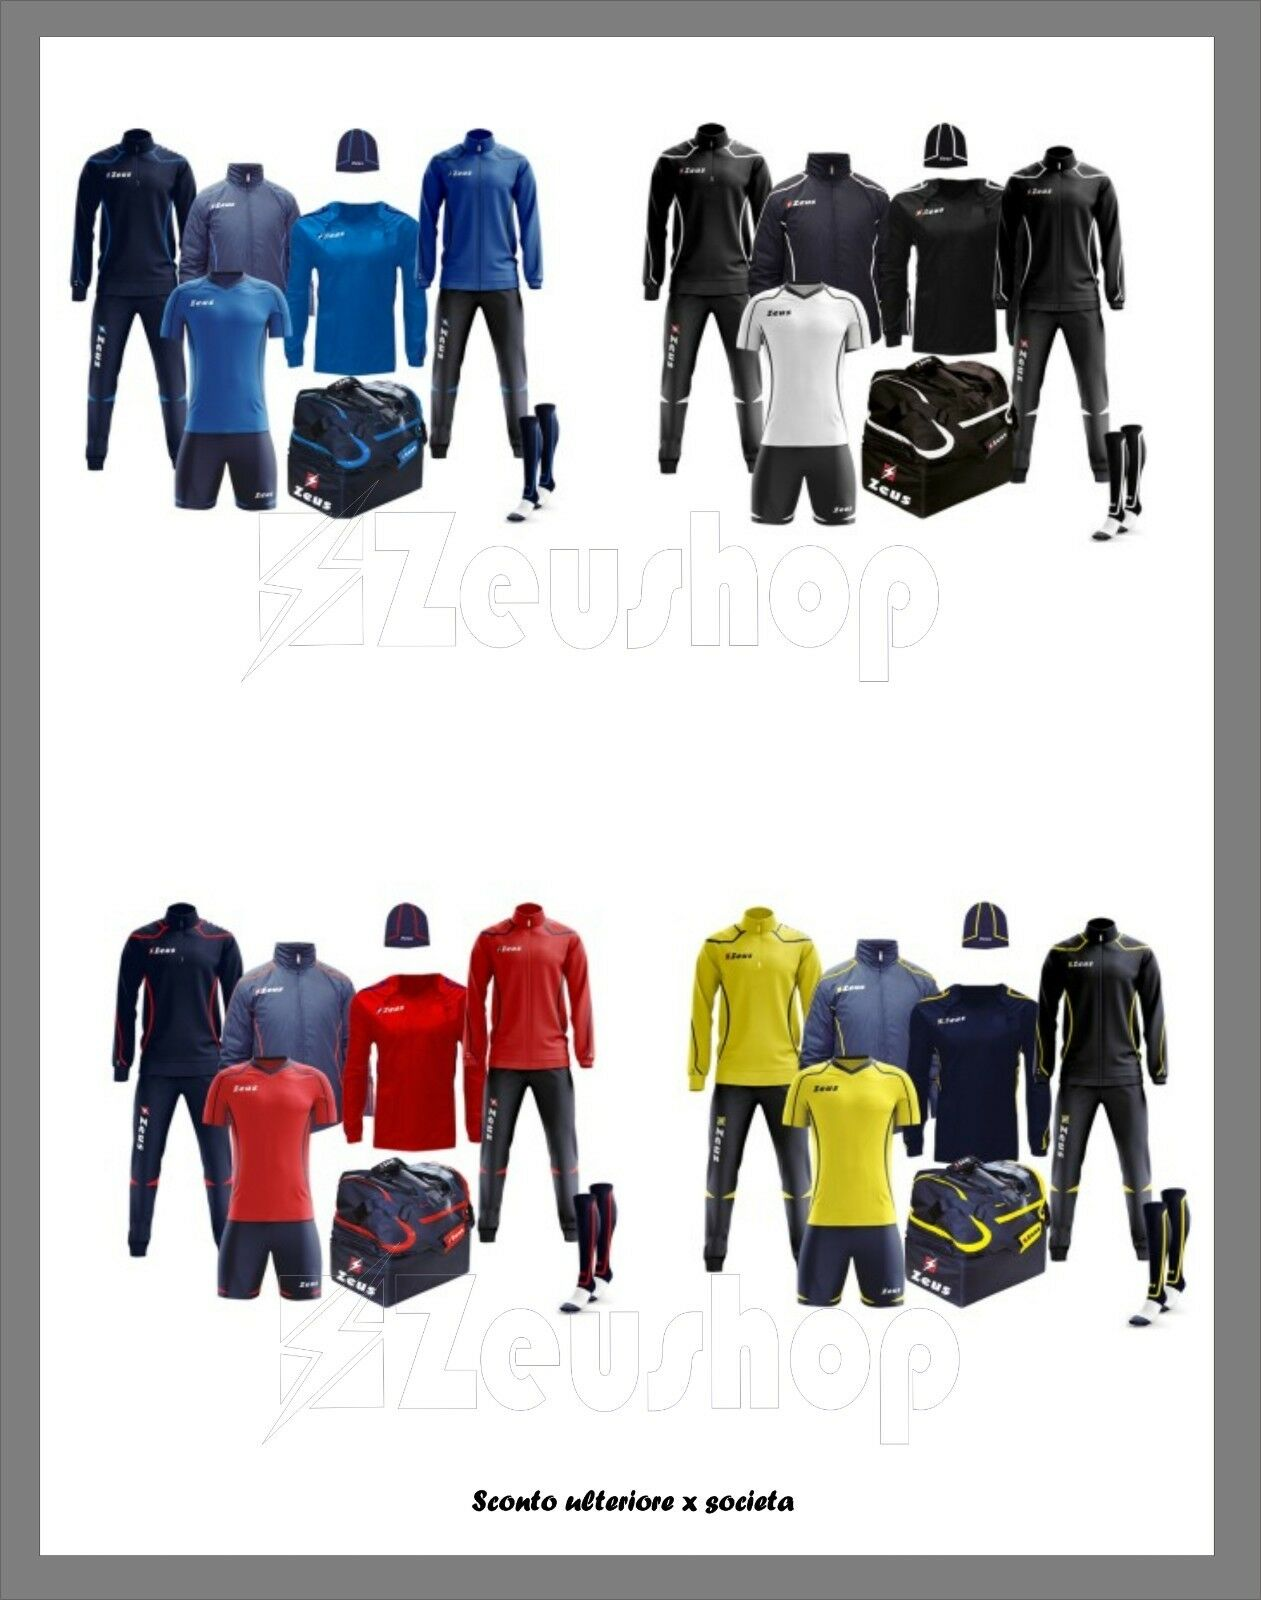 Box Fauno Zeus Calcio Calcetto Volley Kit Tuta Borsone Borsone Borsone Muta Set Sport K-way 8pz c2d539